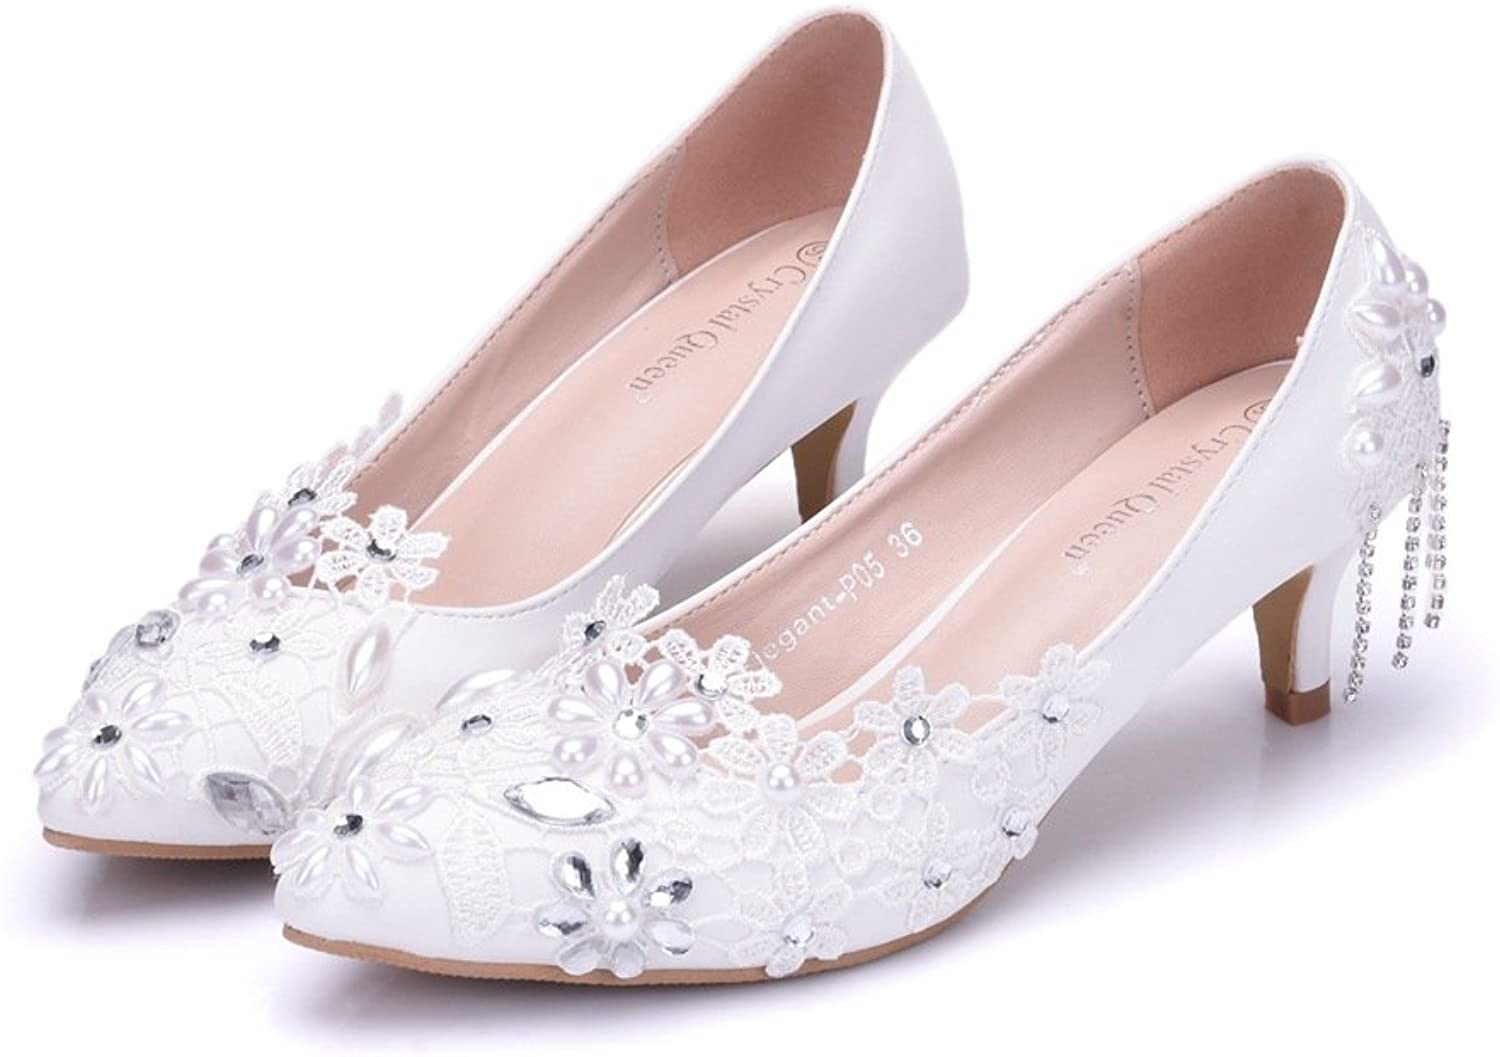 SUNNY Store Wedding shoes Women Sandals with Bridal shoes Women shoes Low Heels